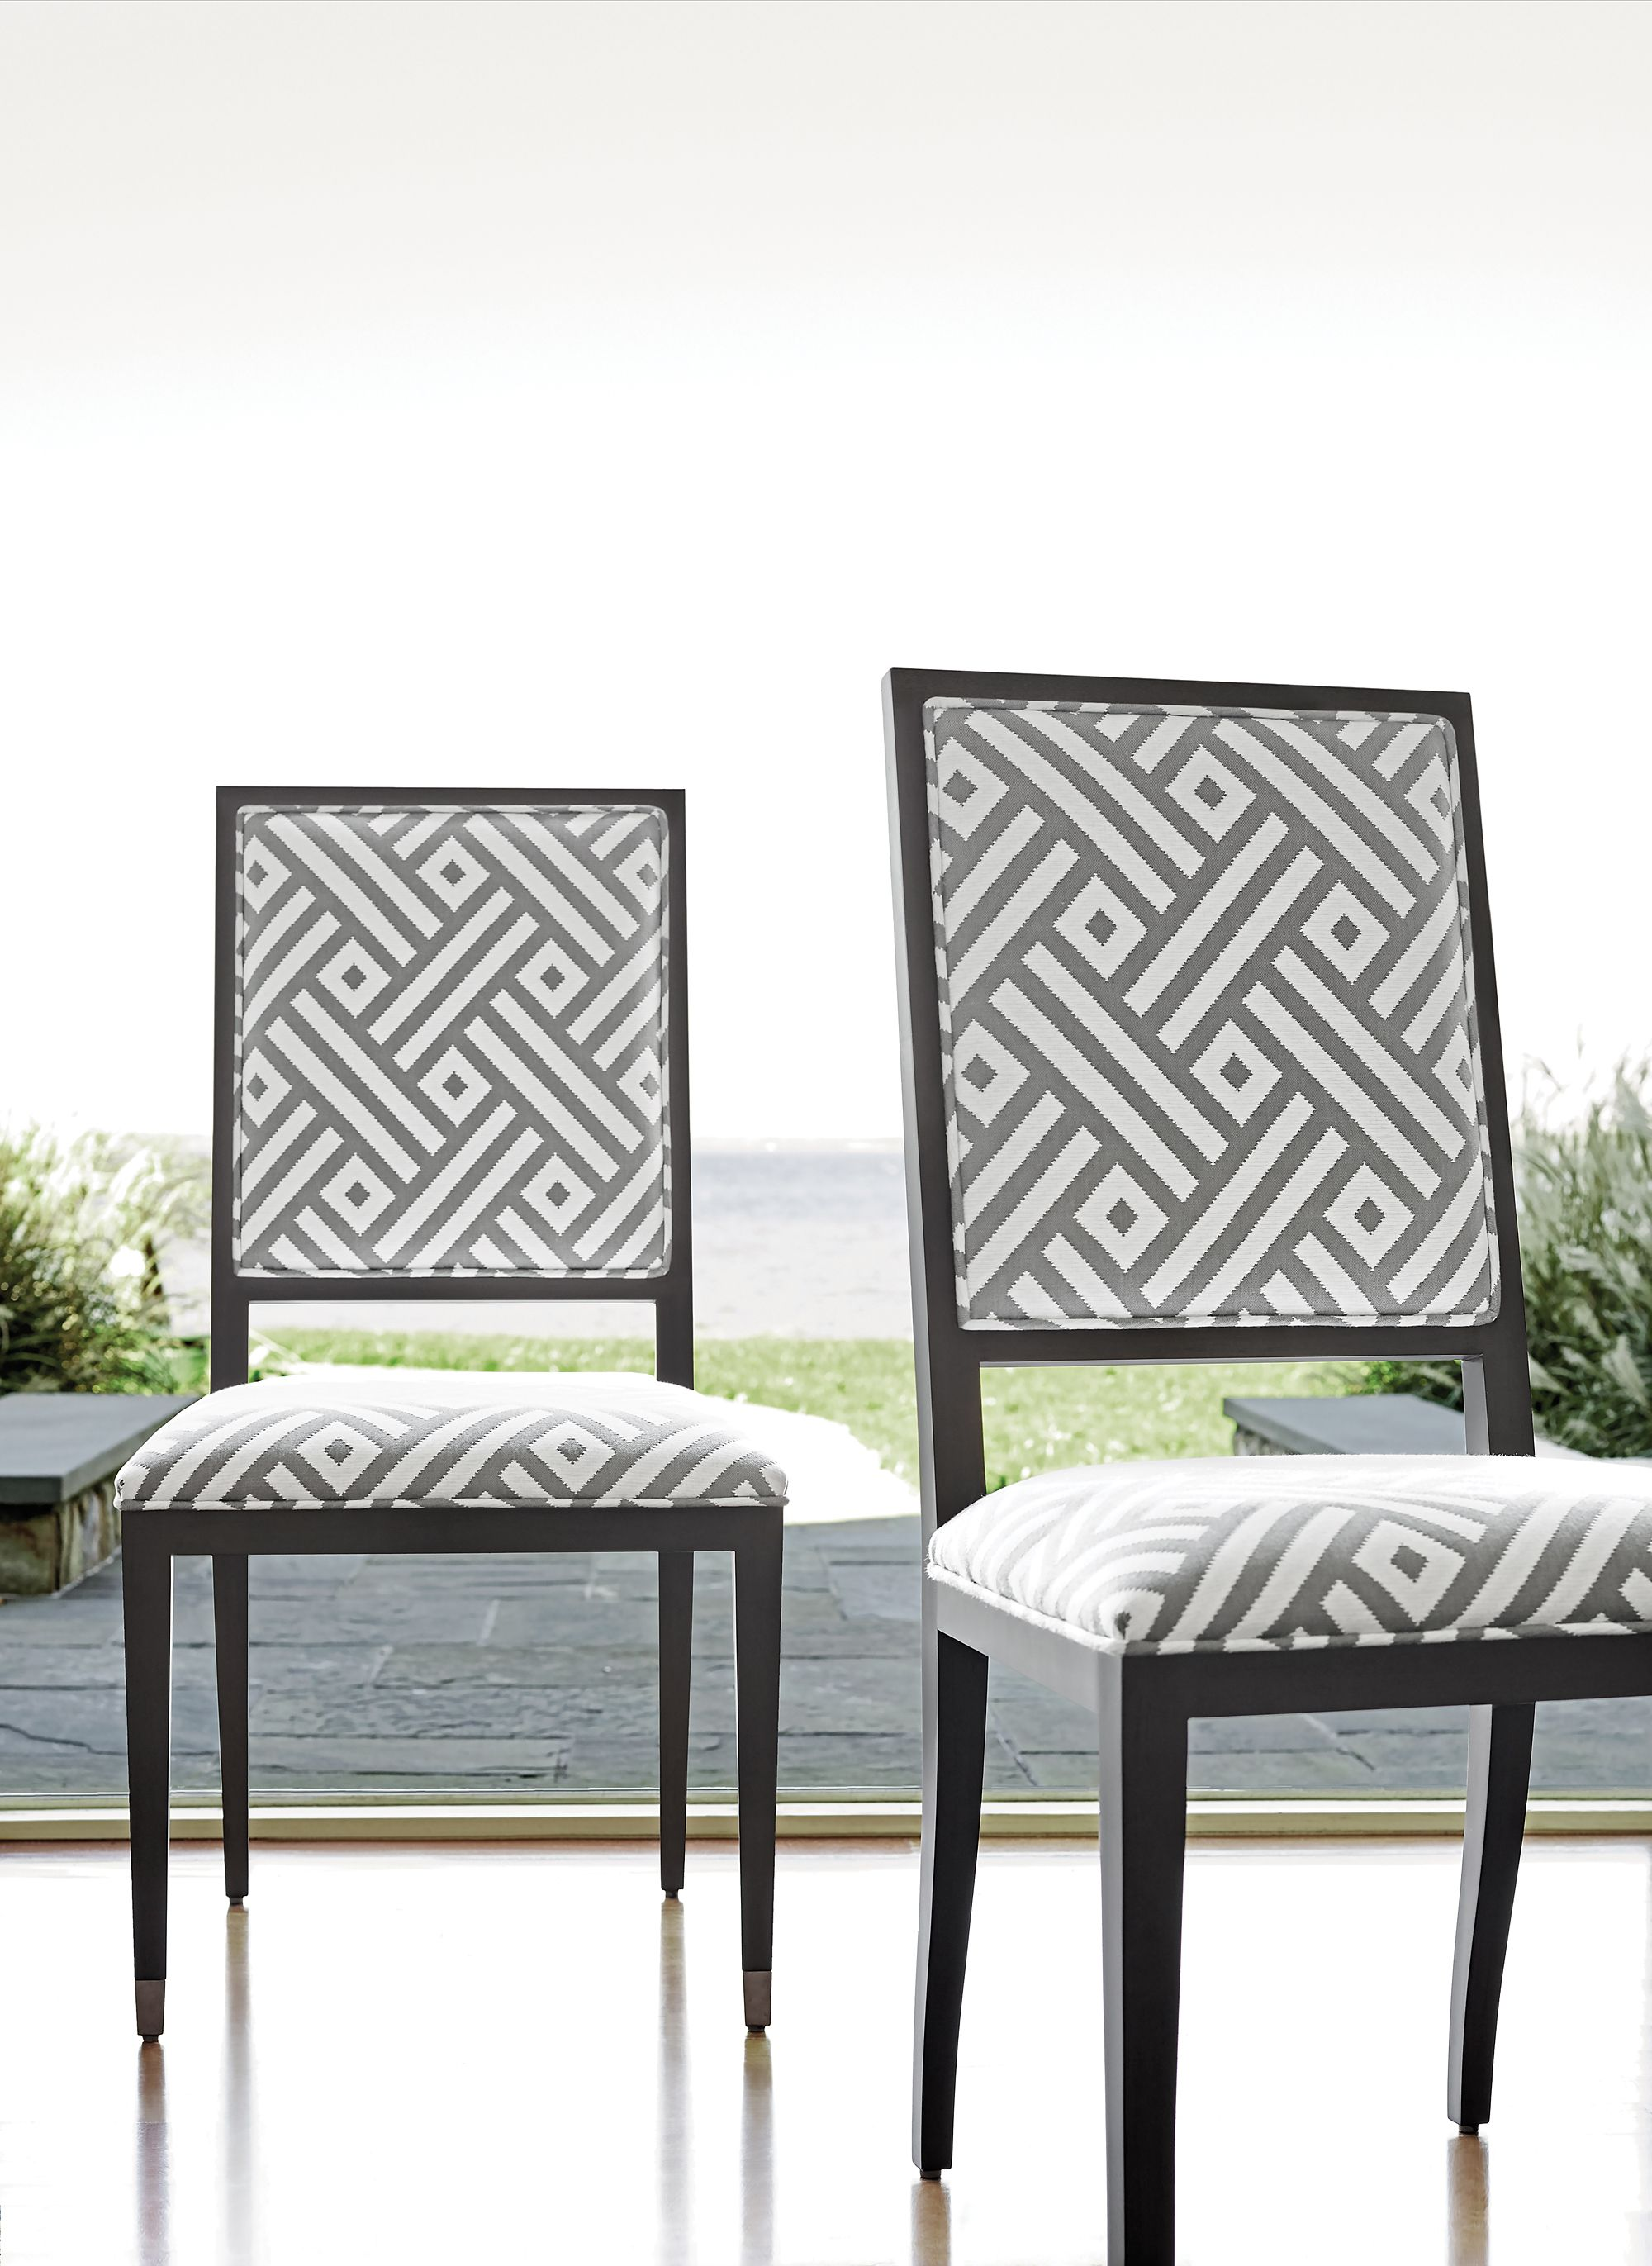 Lauderdale Chairs From Thibaut Fine Furniture In Parterre Indoor/outdoor  Fabric In Heather Grey.